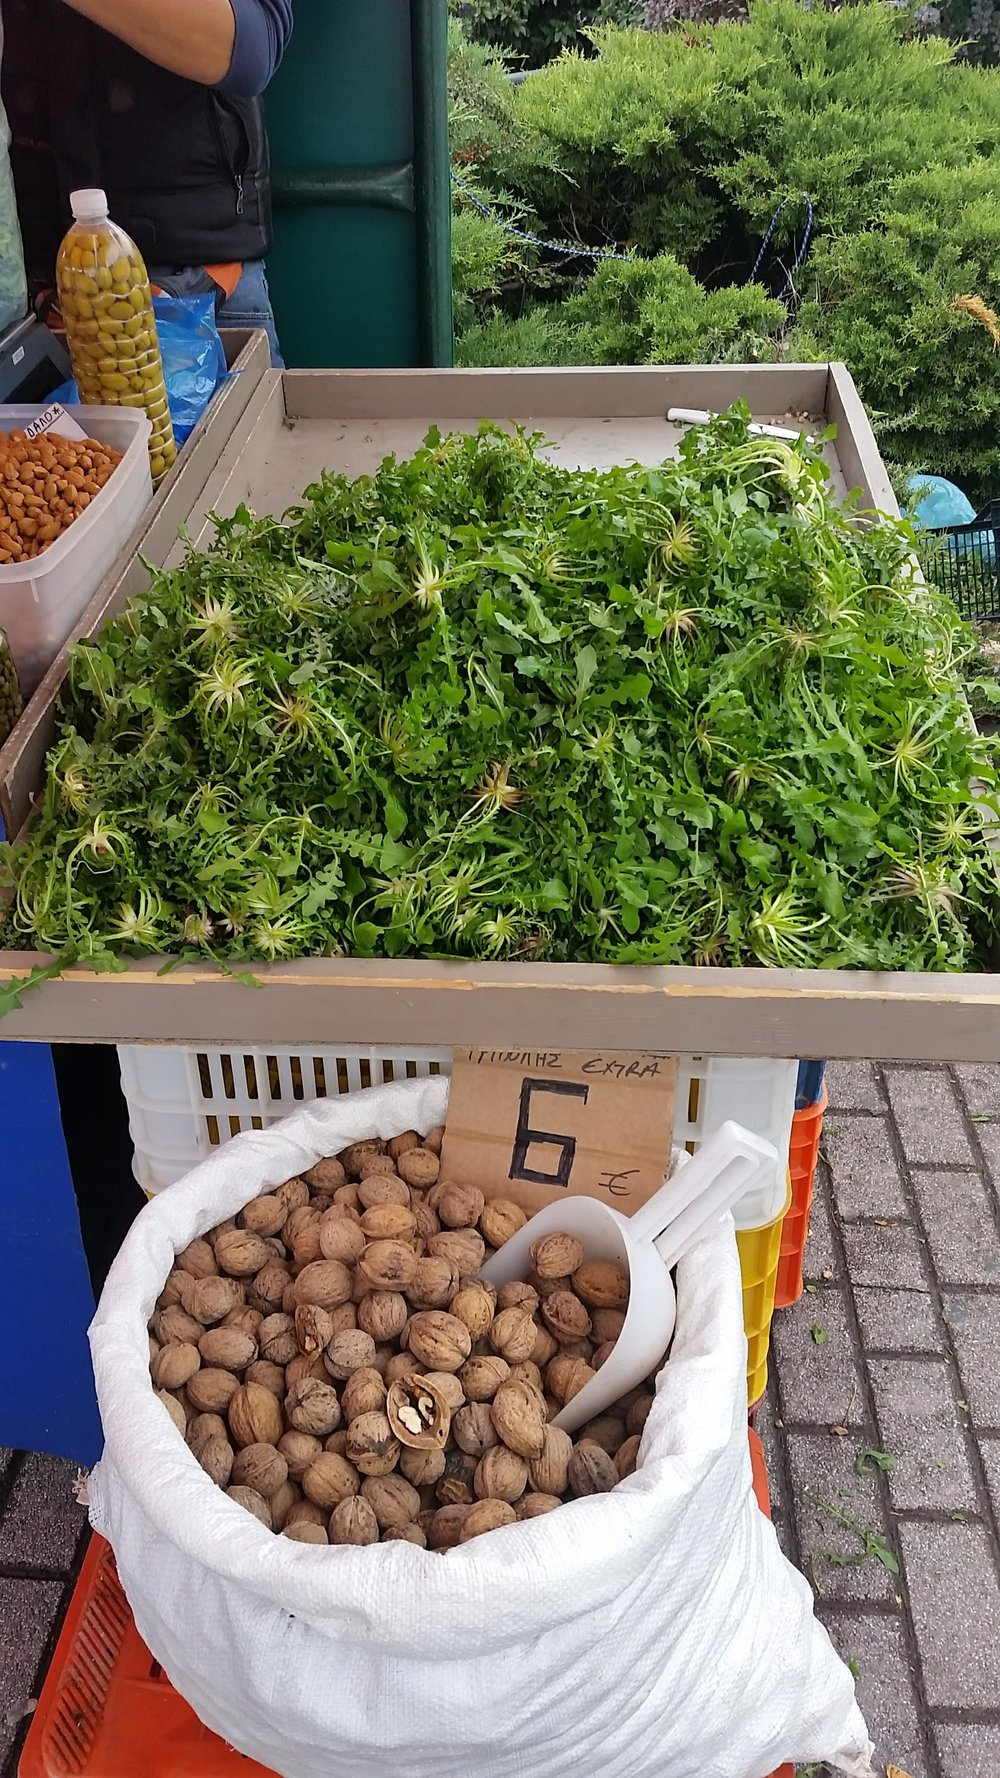 Wild greens and walnuts sold at a roadside in the Peloponnese, Greece